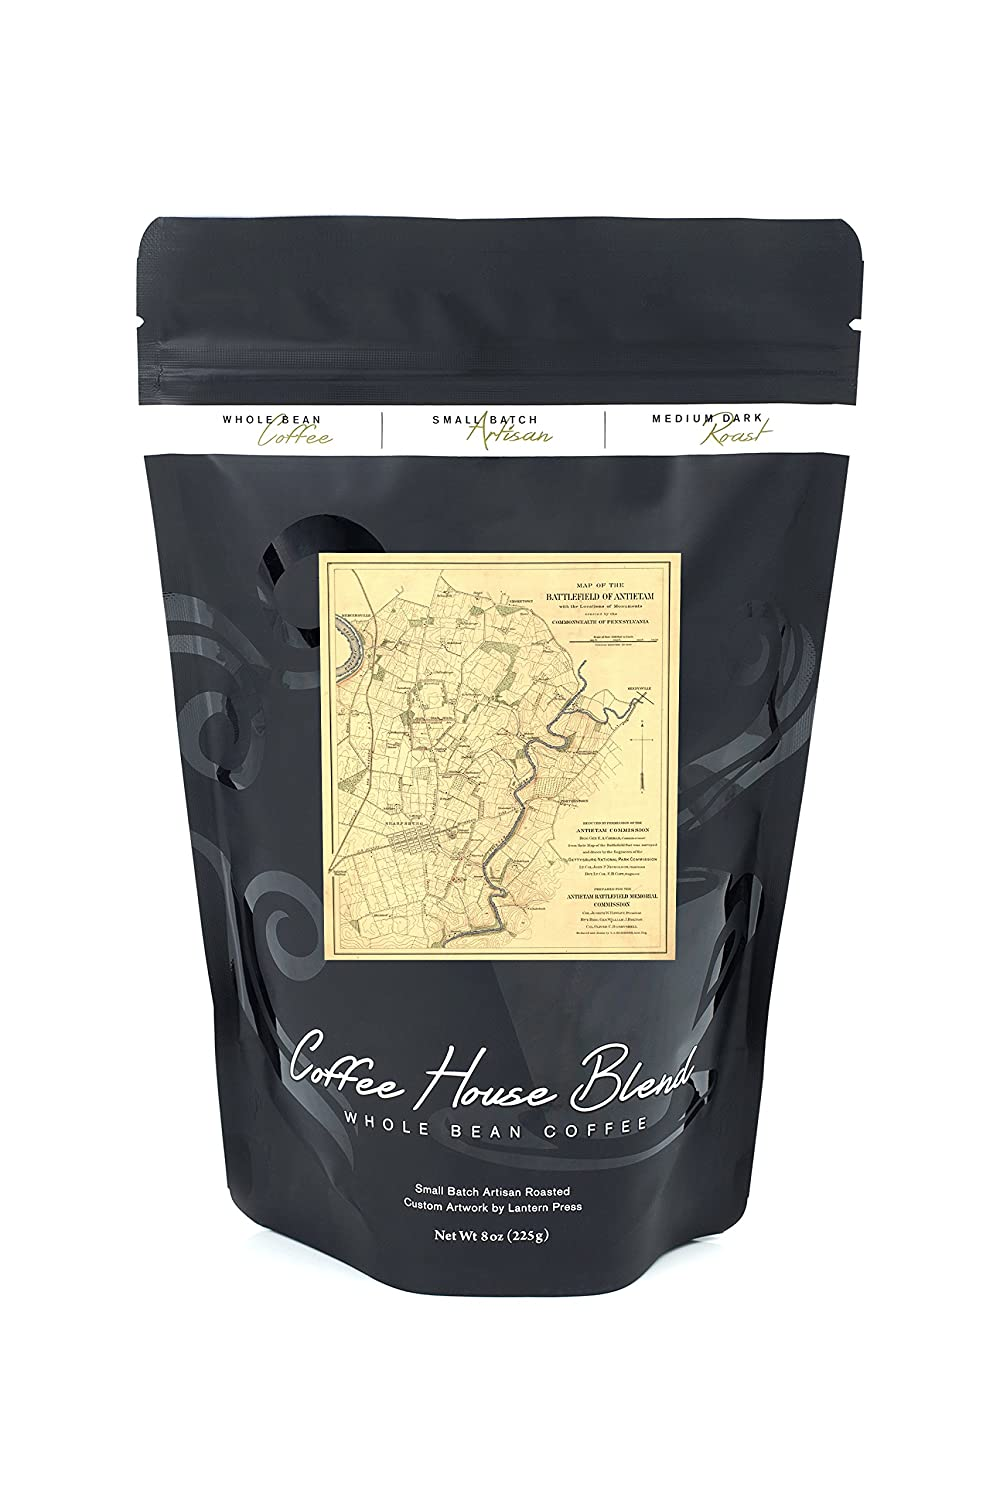 戦いのAntietam – Civil WarパノラマMap Coffee Canvas Tote WarパノラマMap Bag LANT-19964-TT Civil B074RX19KM 8oz Coffee Bag 8oz Coffee Bag, ProShopスポテック:25cd7cf2 --- itxassou.fr